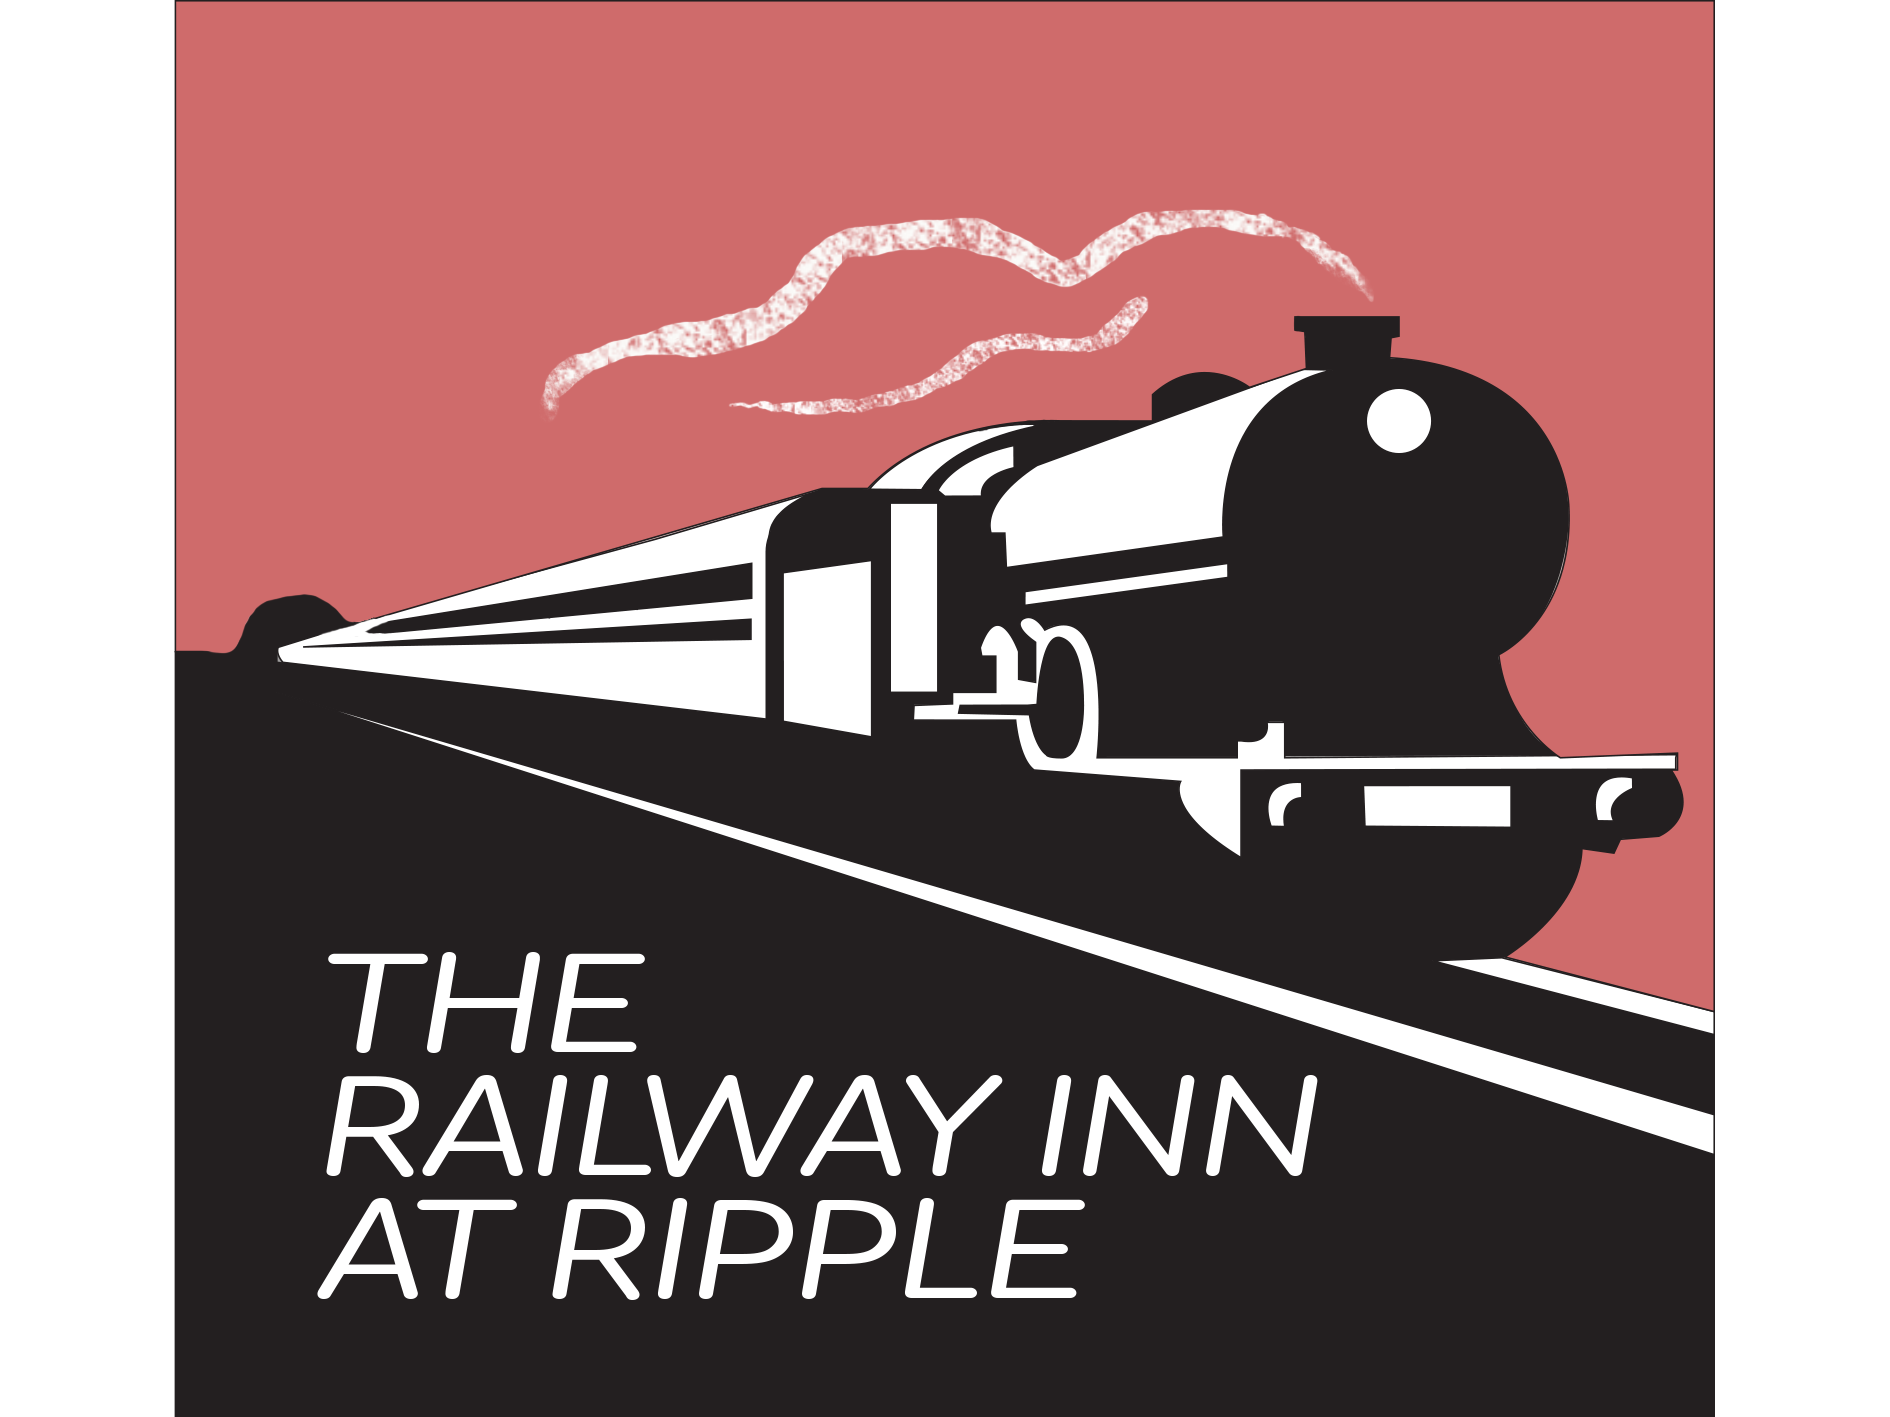 The Railway Inn at Ripple